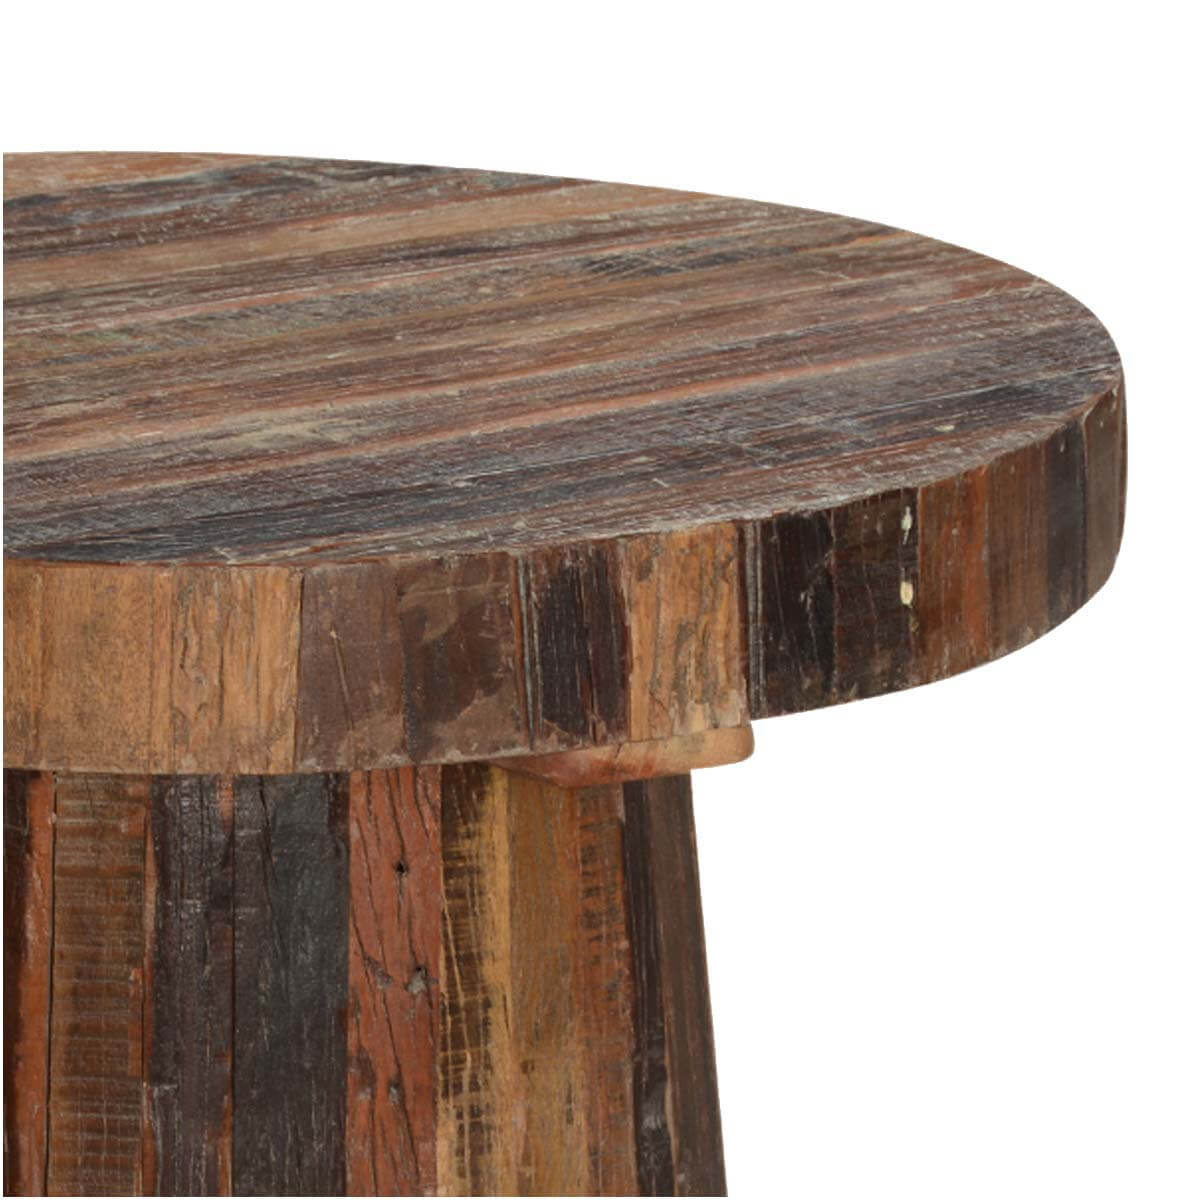 mushroom stool reclaimed wood 30 round caf dining table. Black Bedroom Furniture Sets. Home Design Ideas